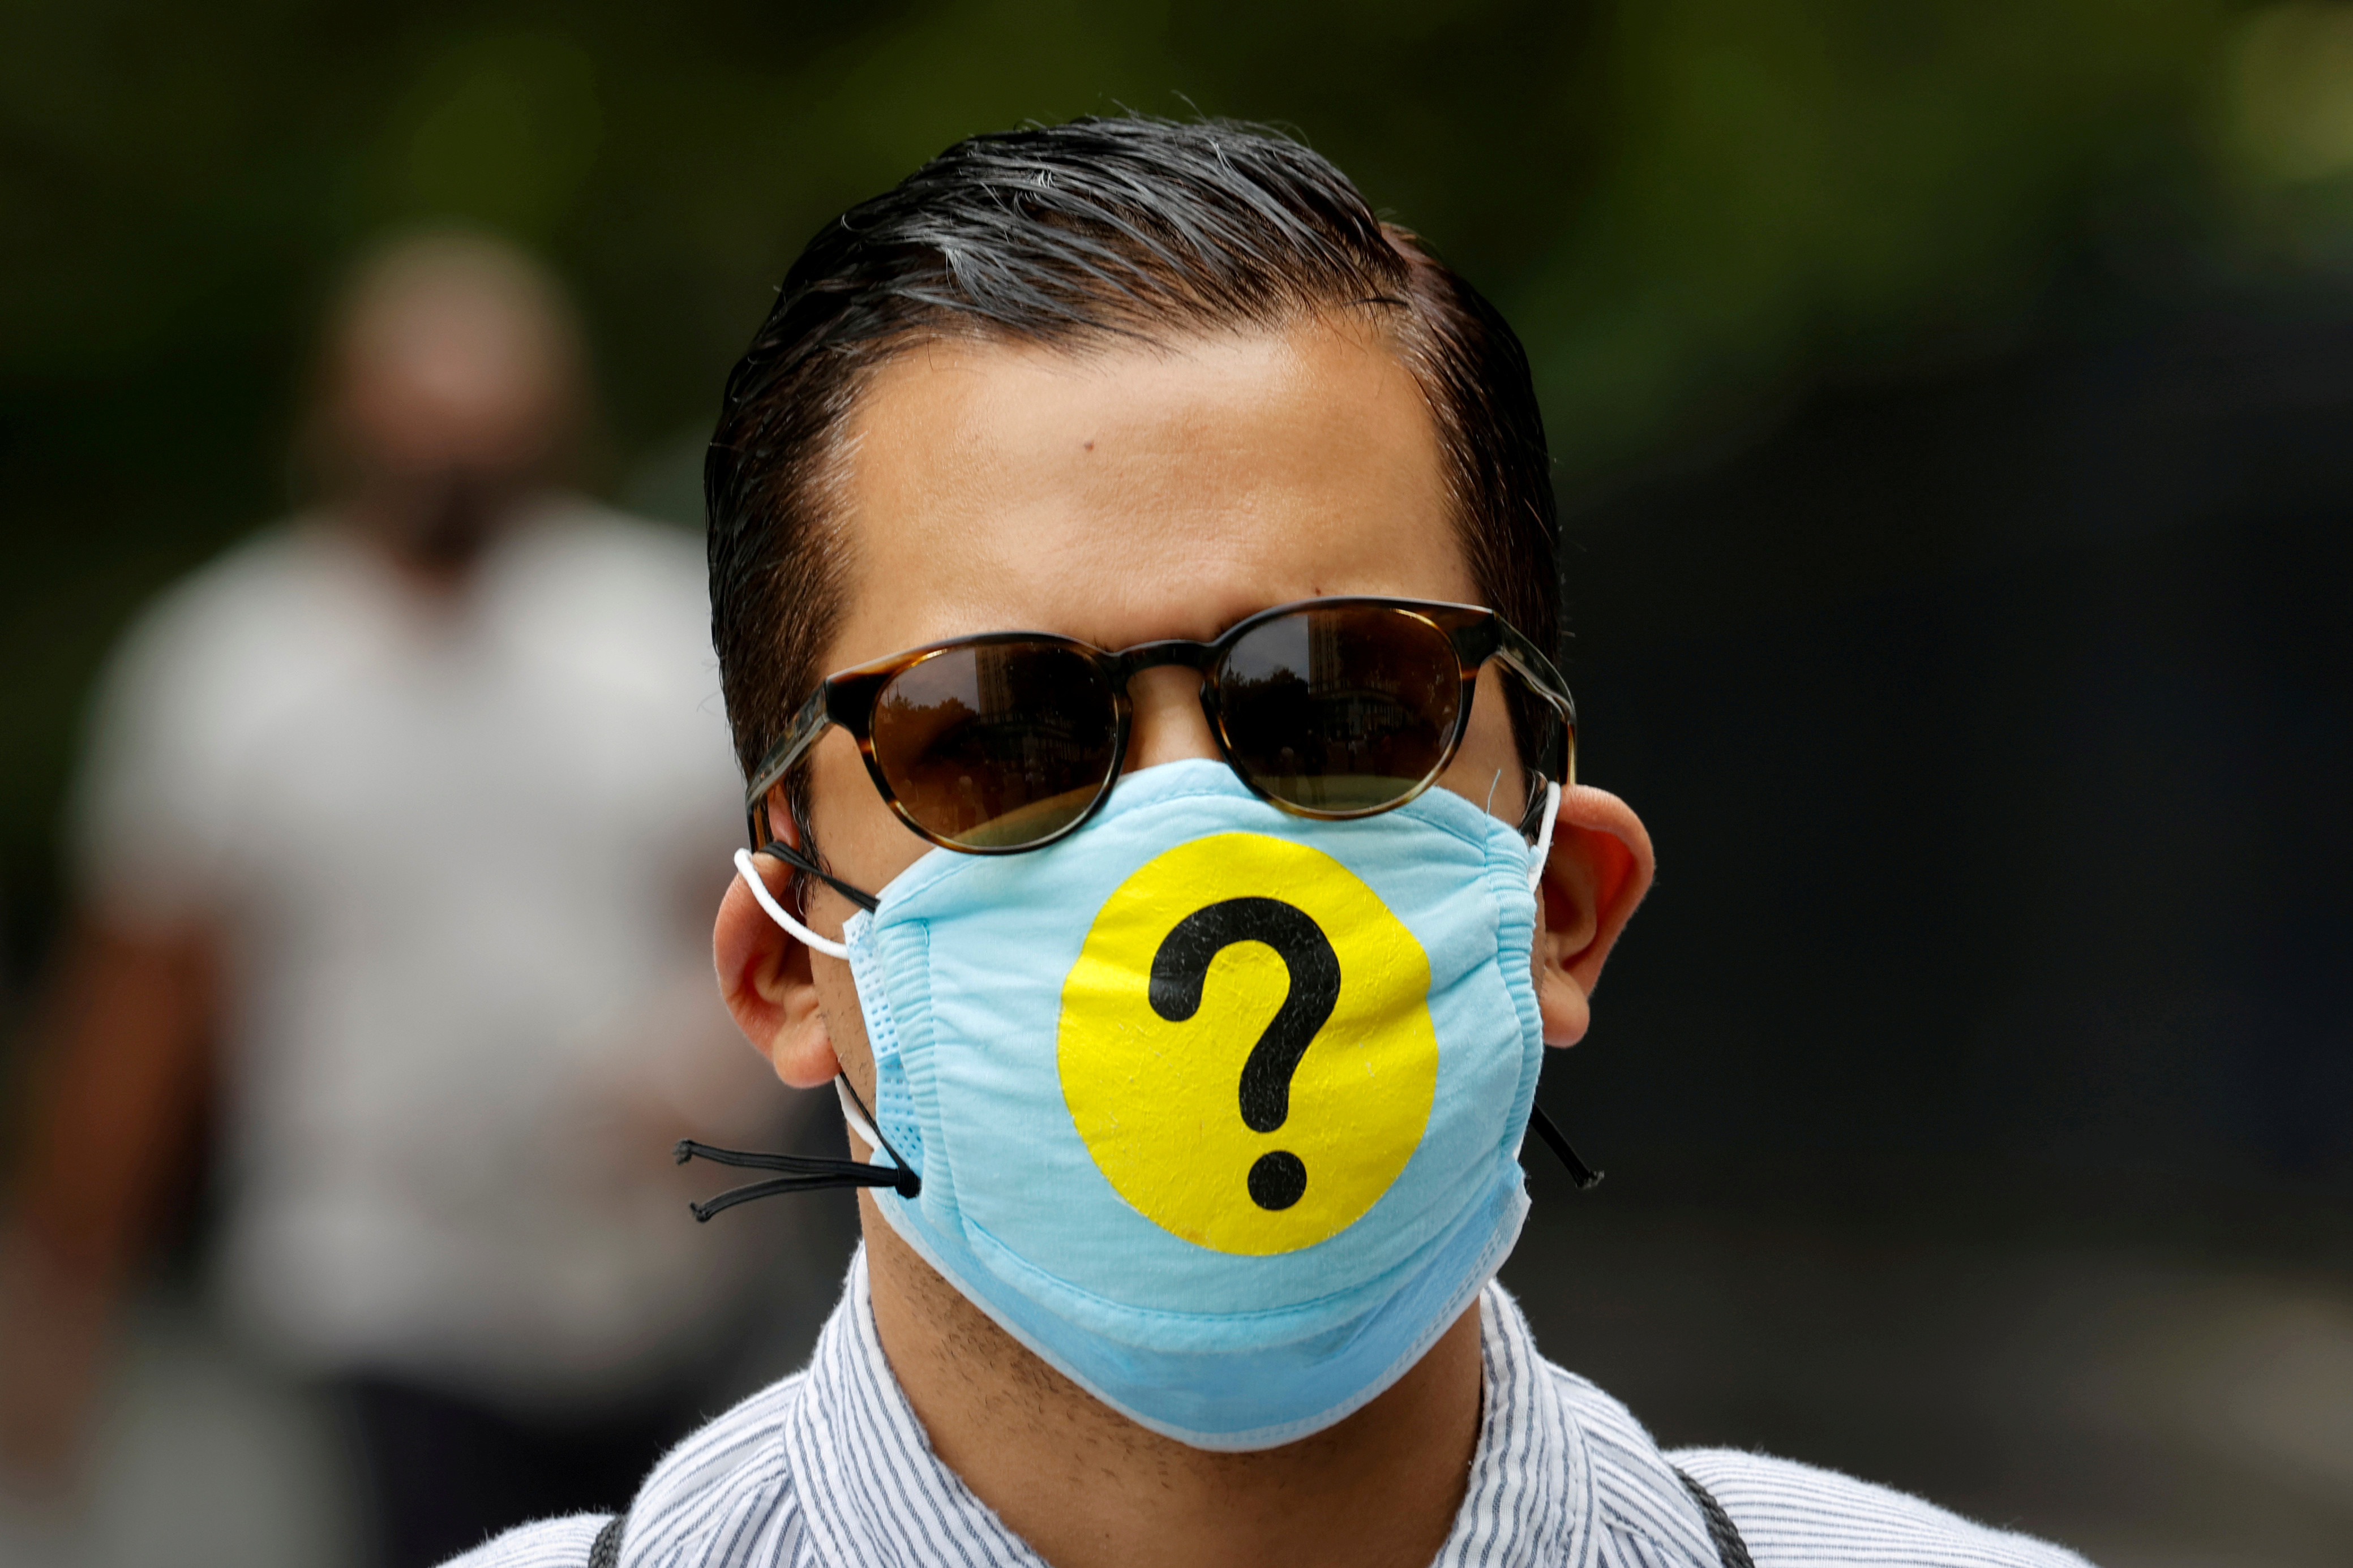 A man wears a protective face mask decorated with a question mark in lower Manhattan during the outbreak of the coronavirus disease (COVID-19) in New York, U.S., May 22, 2020. Picture taken May 22, 2020. REUTERS/Mike Segar     TPX IMAGES OF THE DAY - RC2FUG97KKF0